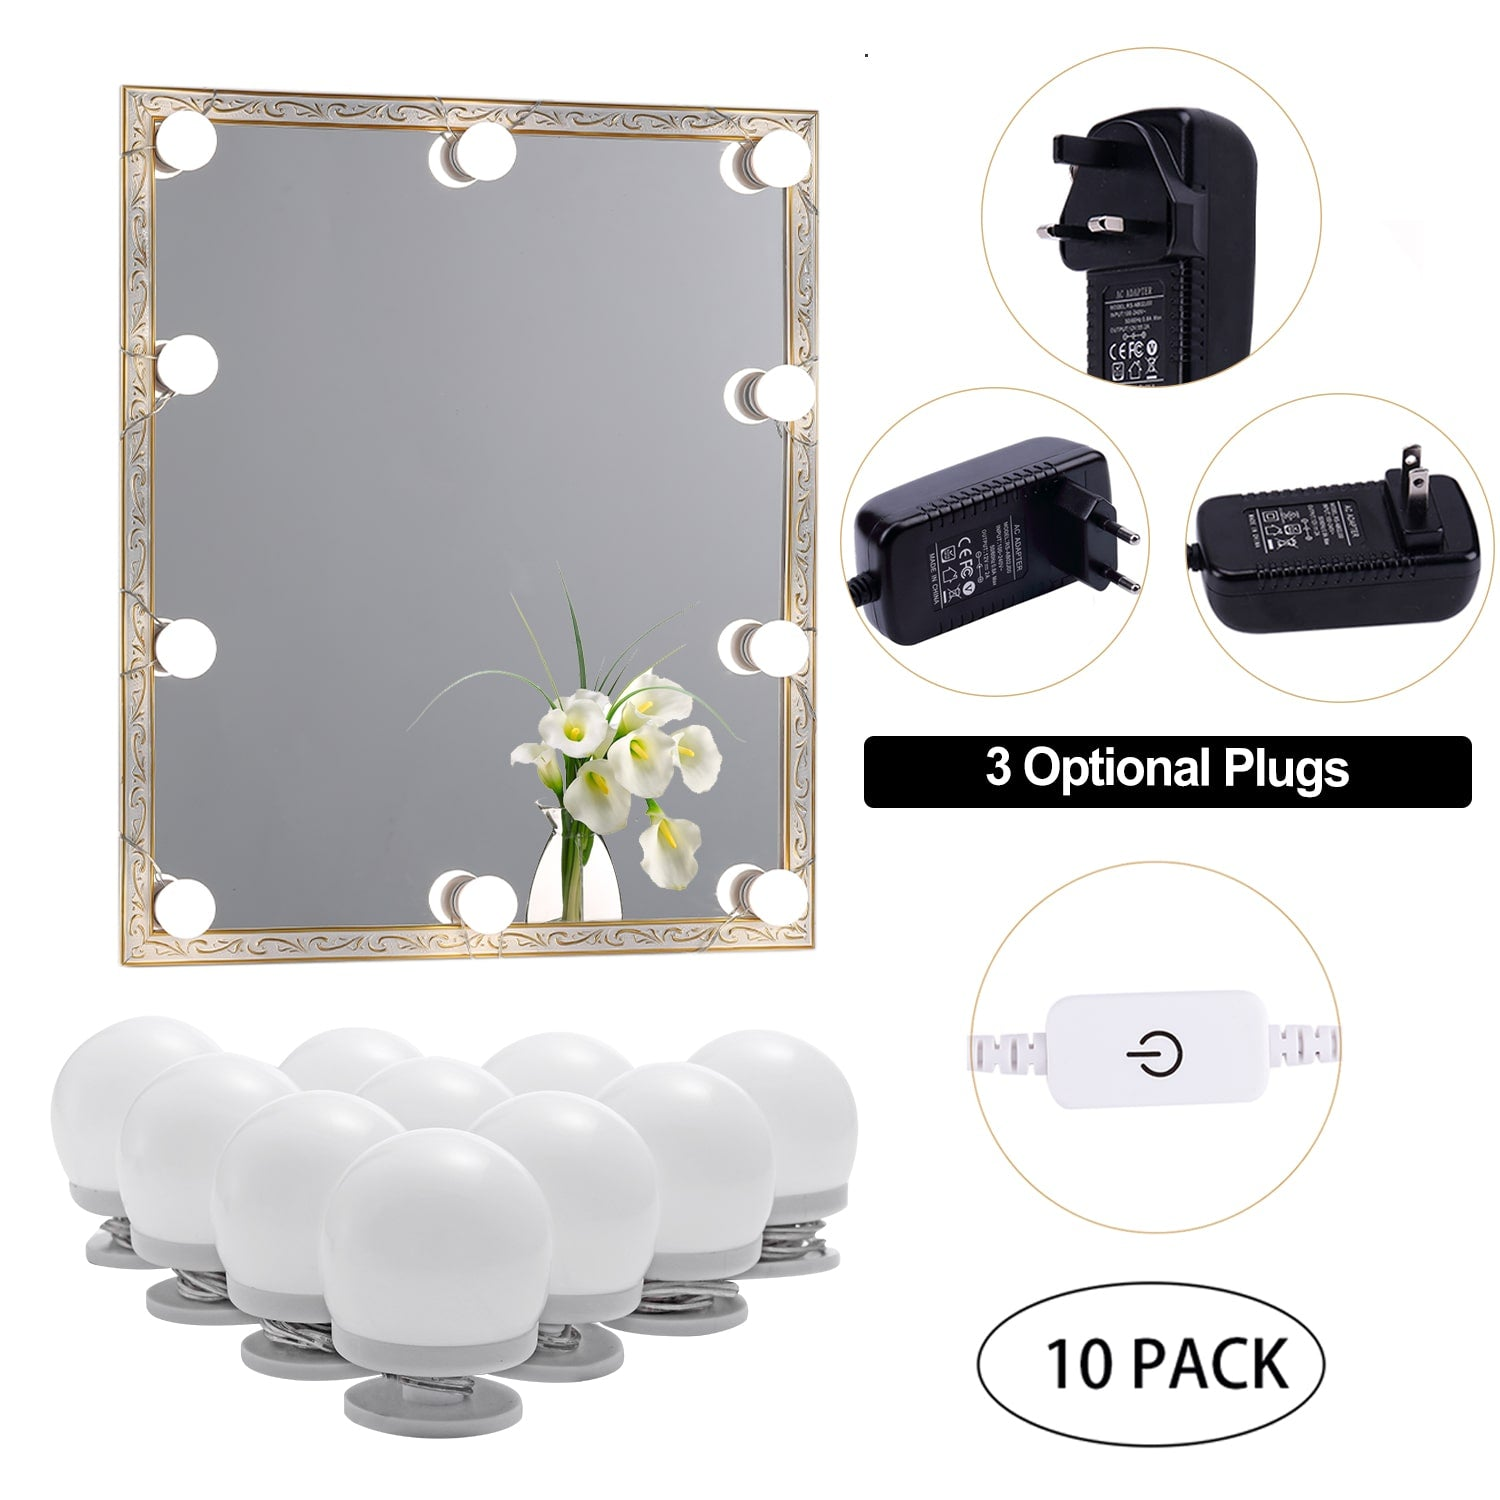 LED Makeup Mirror Lights(4000K, 10Bulbs, Plug in), Mirror Not Included